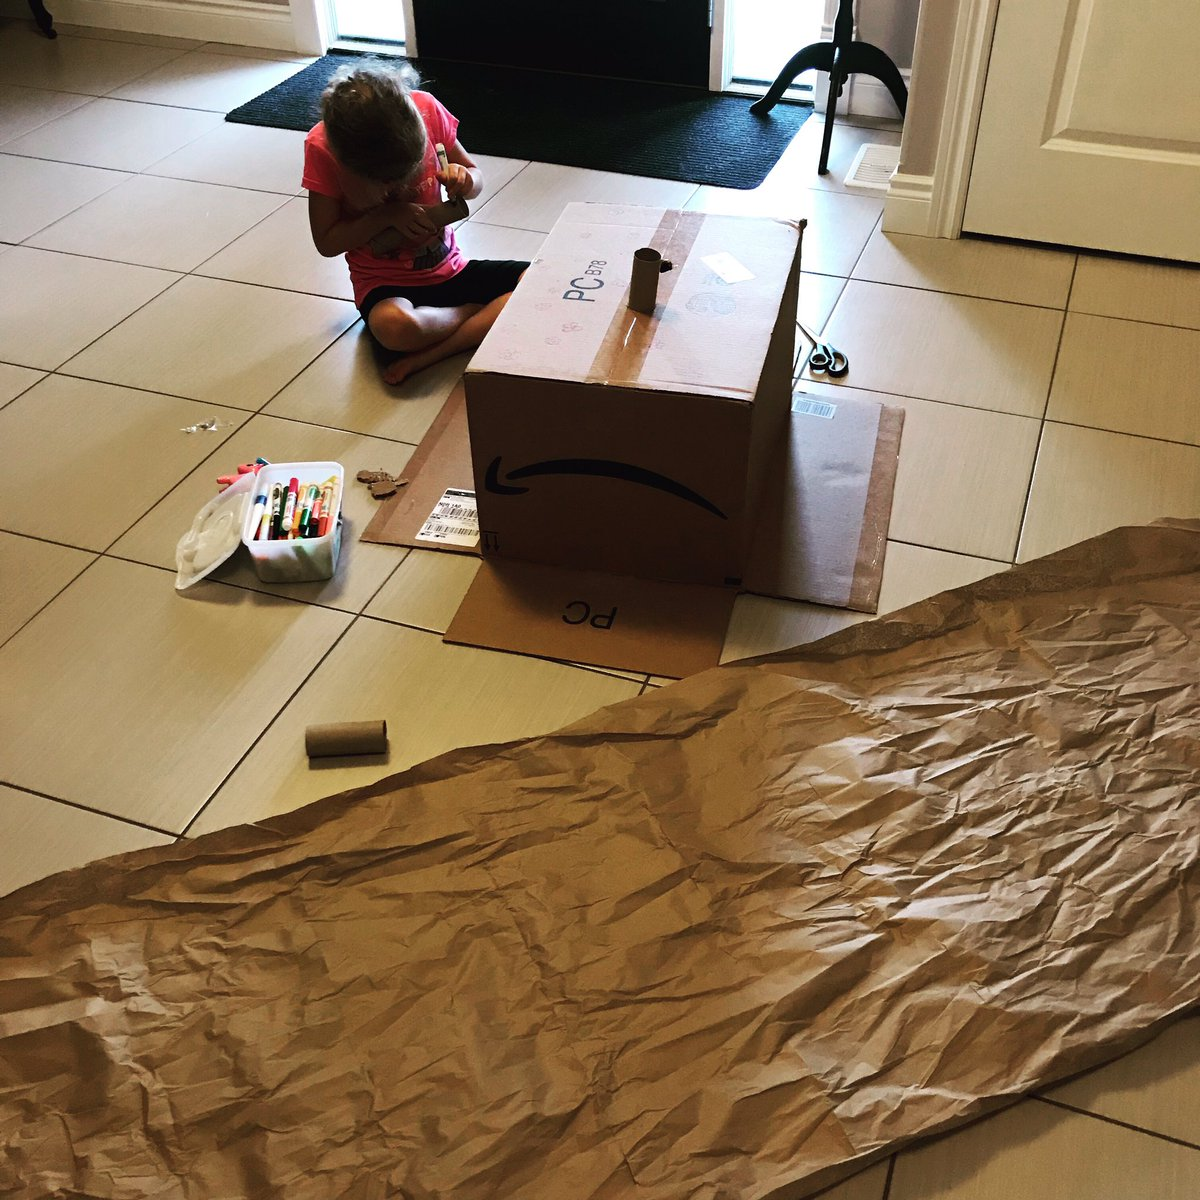 test Twitter Media - #STEM crafts are happening. Do you have a lot of deliveries coming in this week? Save the packing materials for a craft day and watch the creativity take over.  Where is the math? Shapes, measuring, patterns, logic. There are so many opportunities for math discussions here. https://t.co/BETo3DxrBb